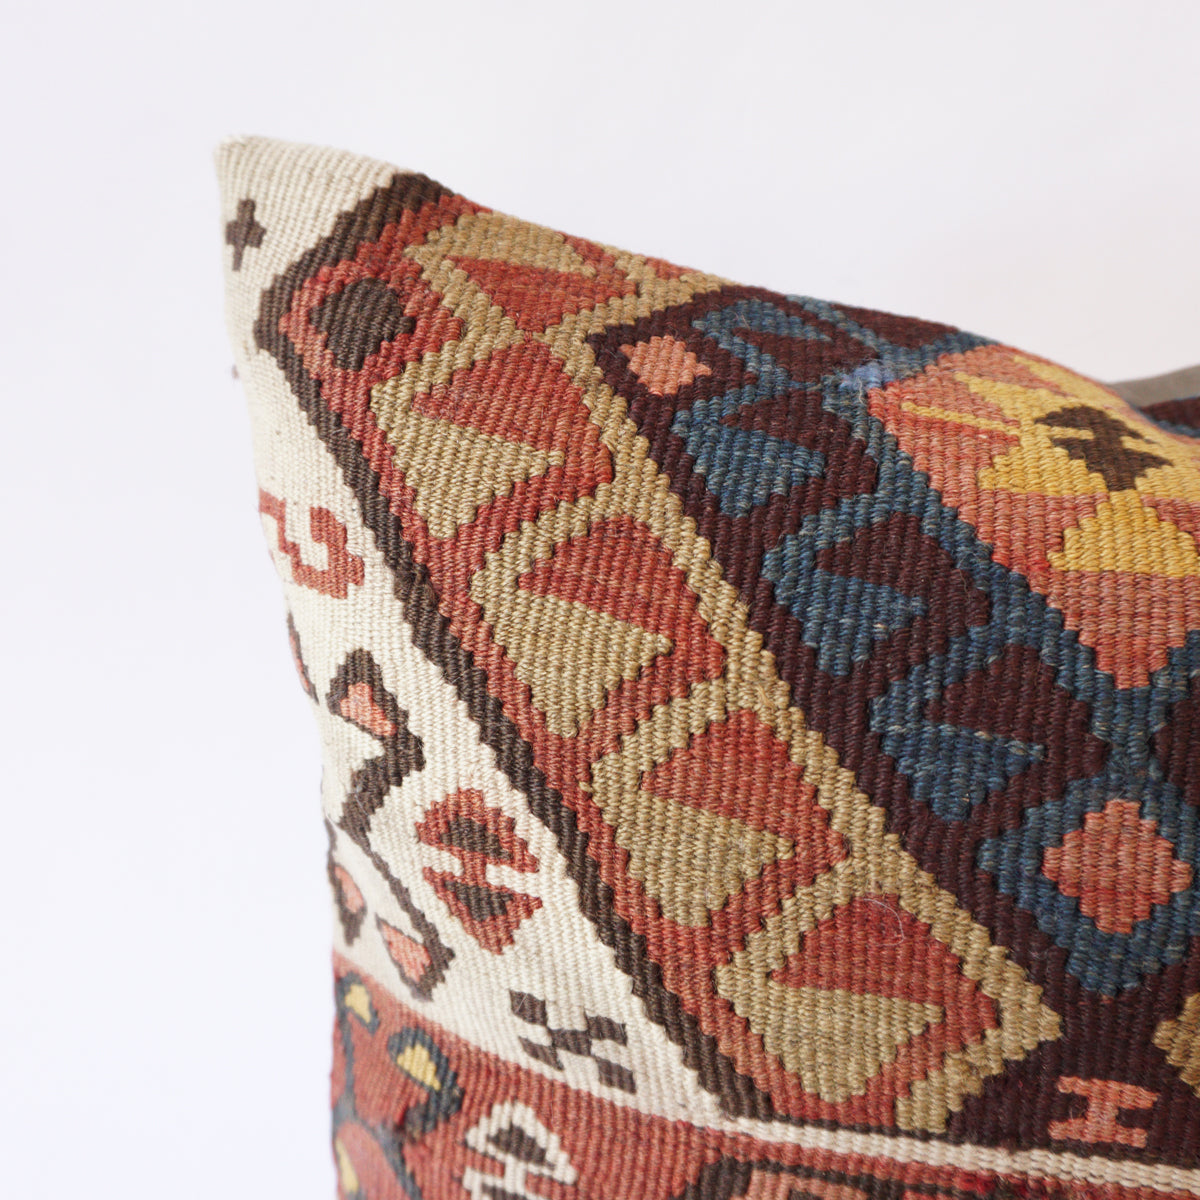 16x16 Kilim pillowcase made from recycled handwoven vintage Turkish kilims.  Zipper closure. Insert not included. Natural dyes. Wool. One of a kind.